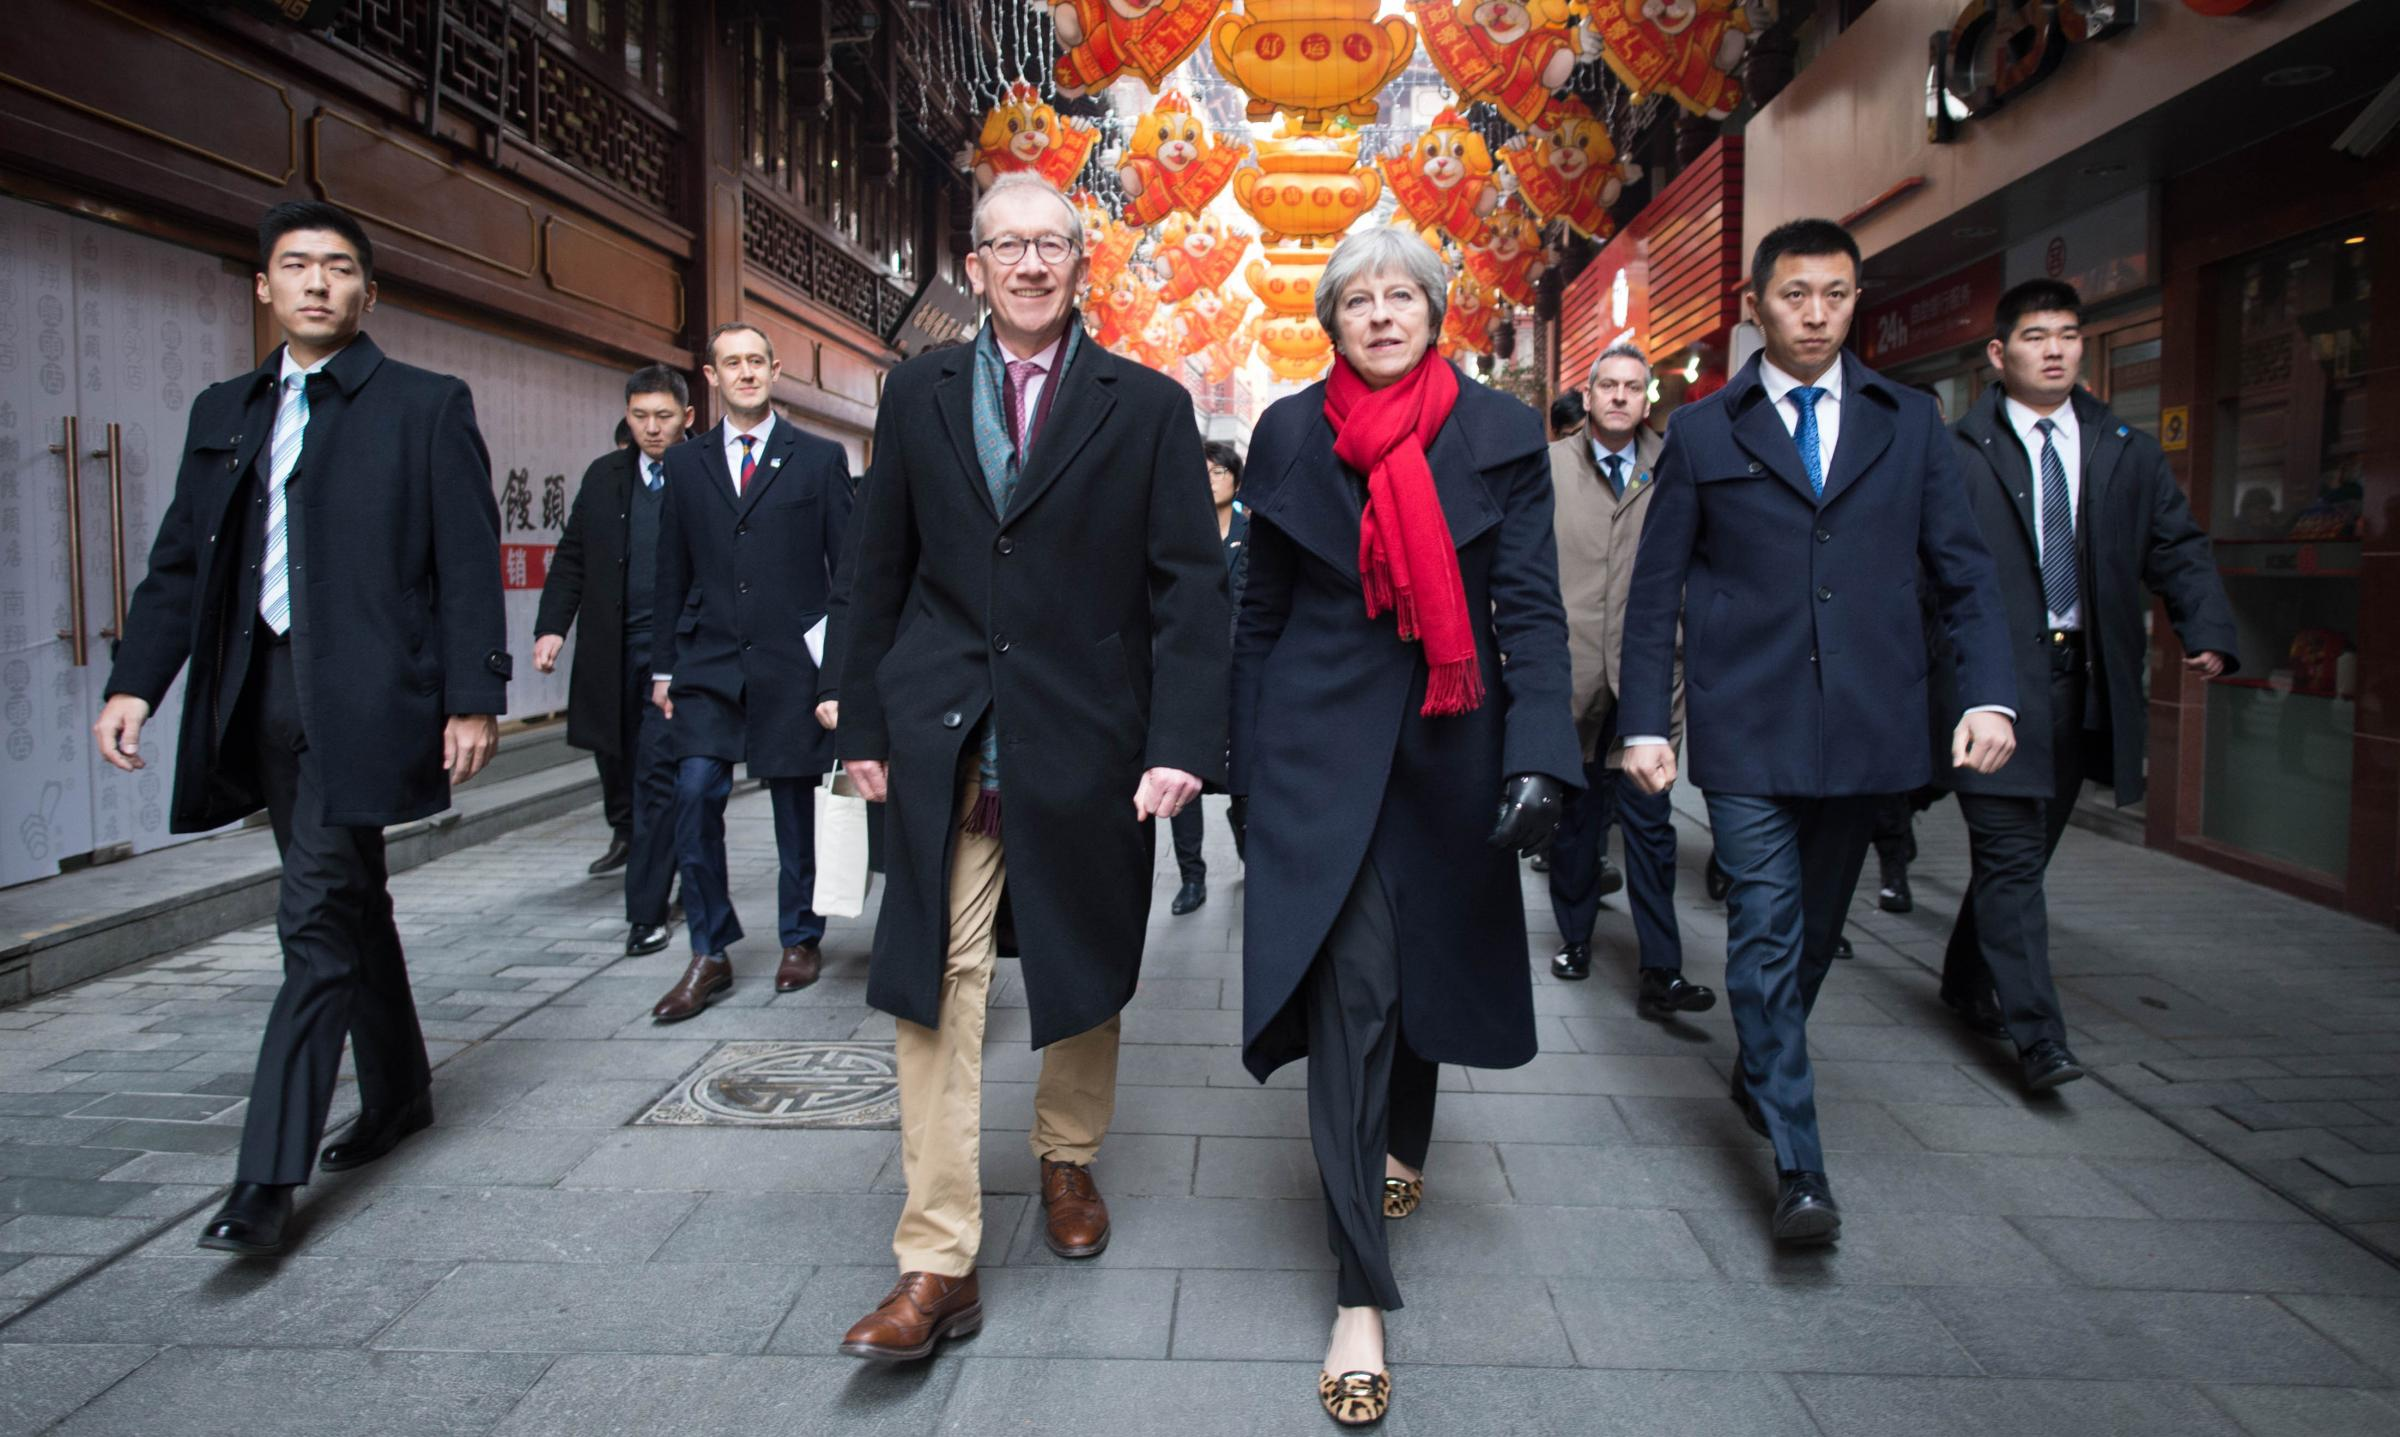 Theresa May and her husband Philip during their visit to the Yu Yuan Temple Garden in Shanghai